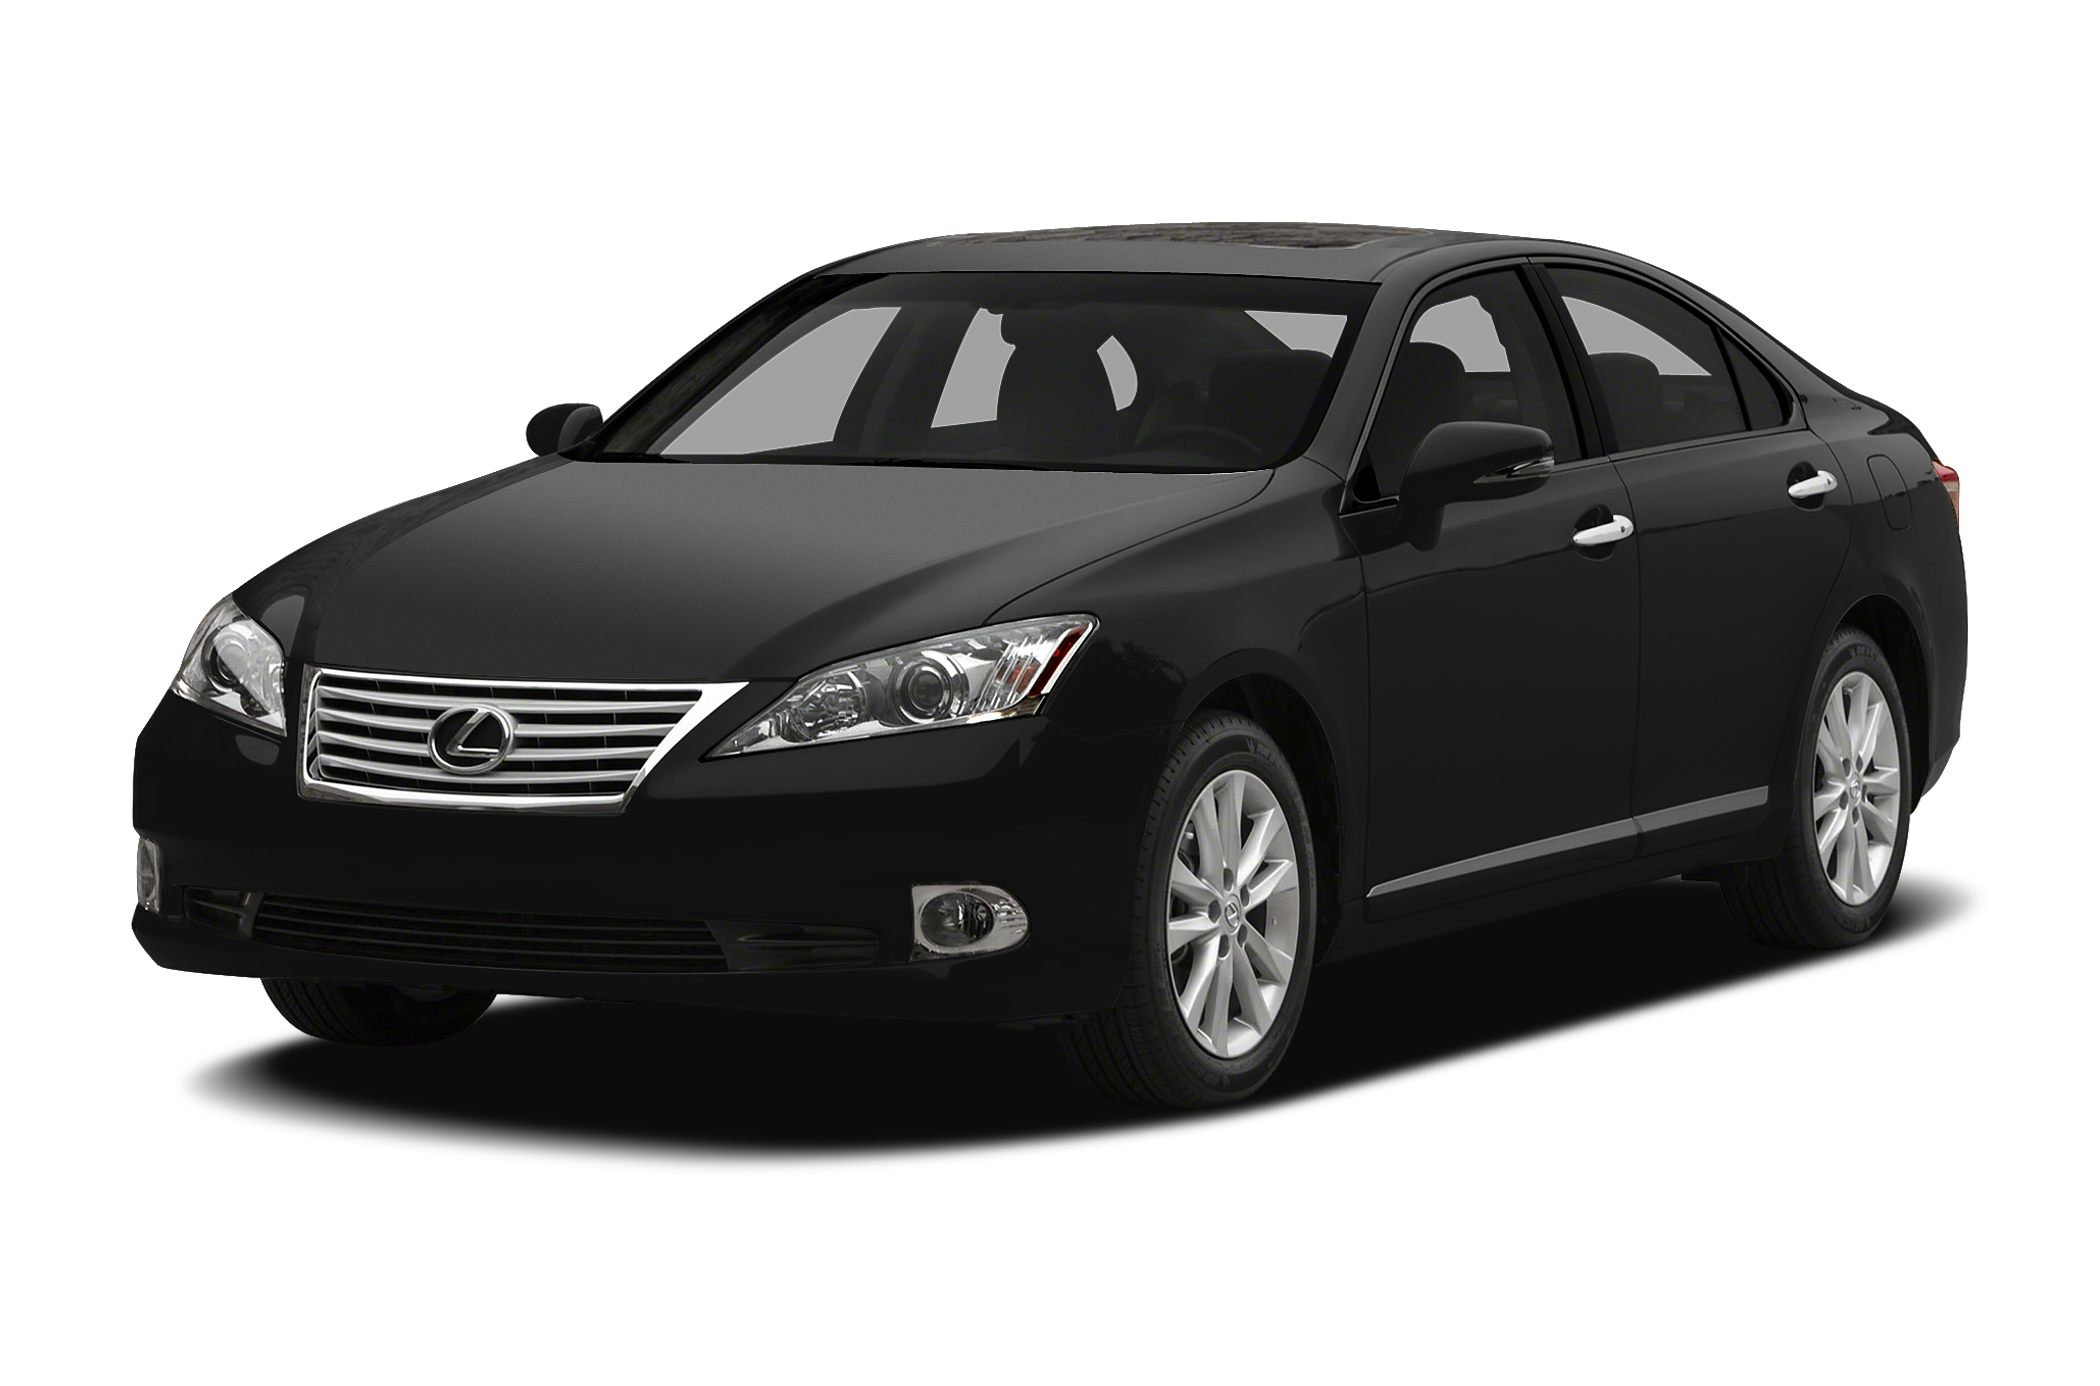 2010 Lexus ES 350 Base WE OFFER FREE LIFETIME INSPECTION Miles 71926Color Black Stock p1598